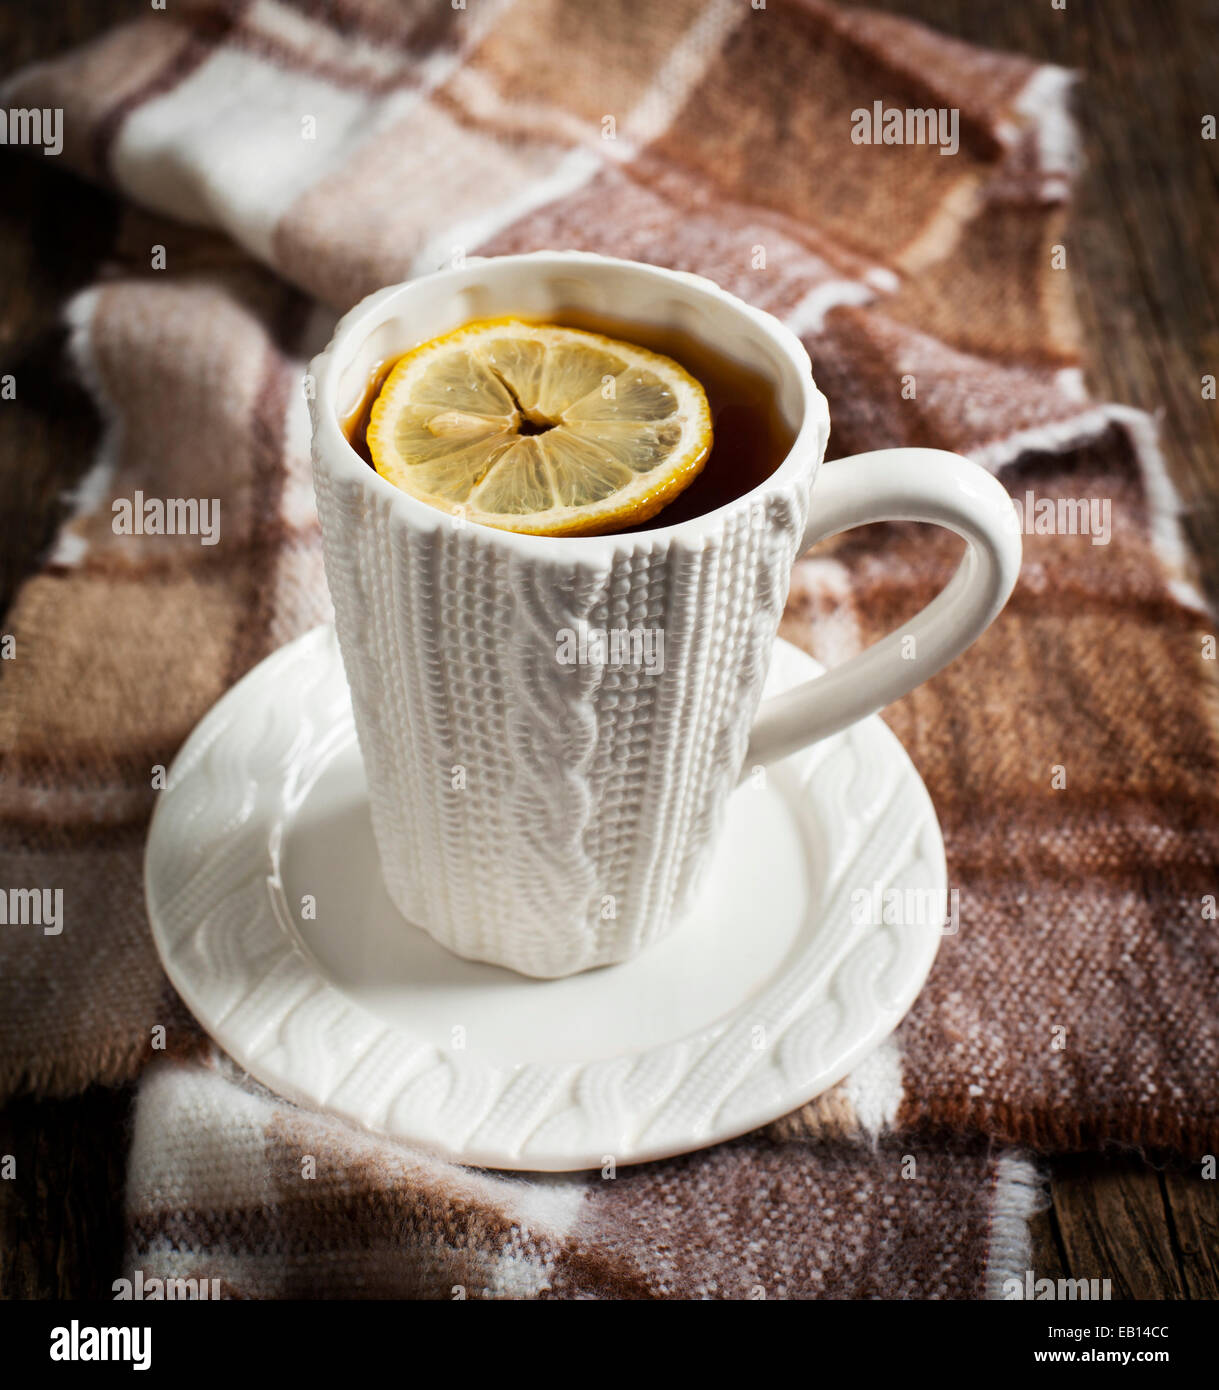 Cup of hot tea with lemon and scarf on wooden table. - Stock Image